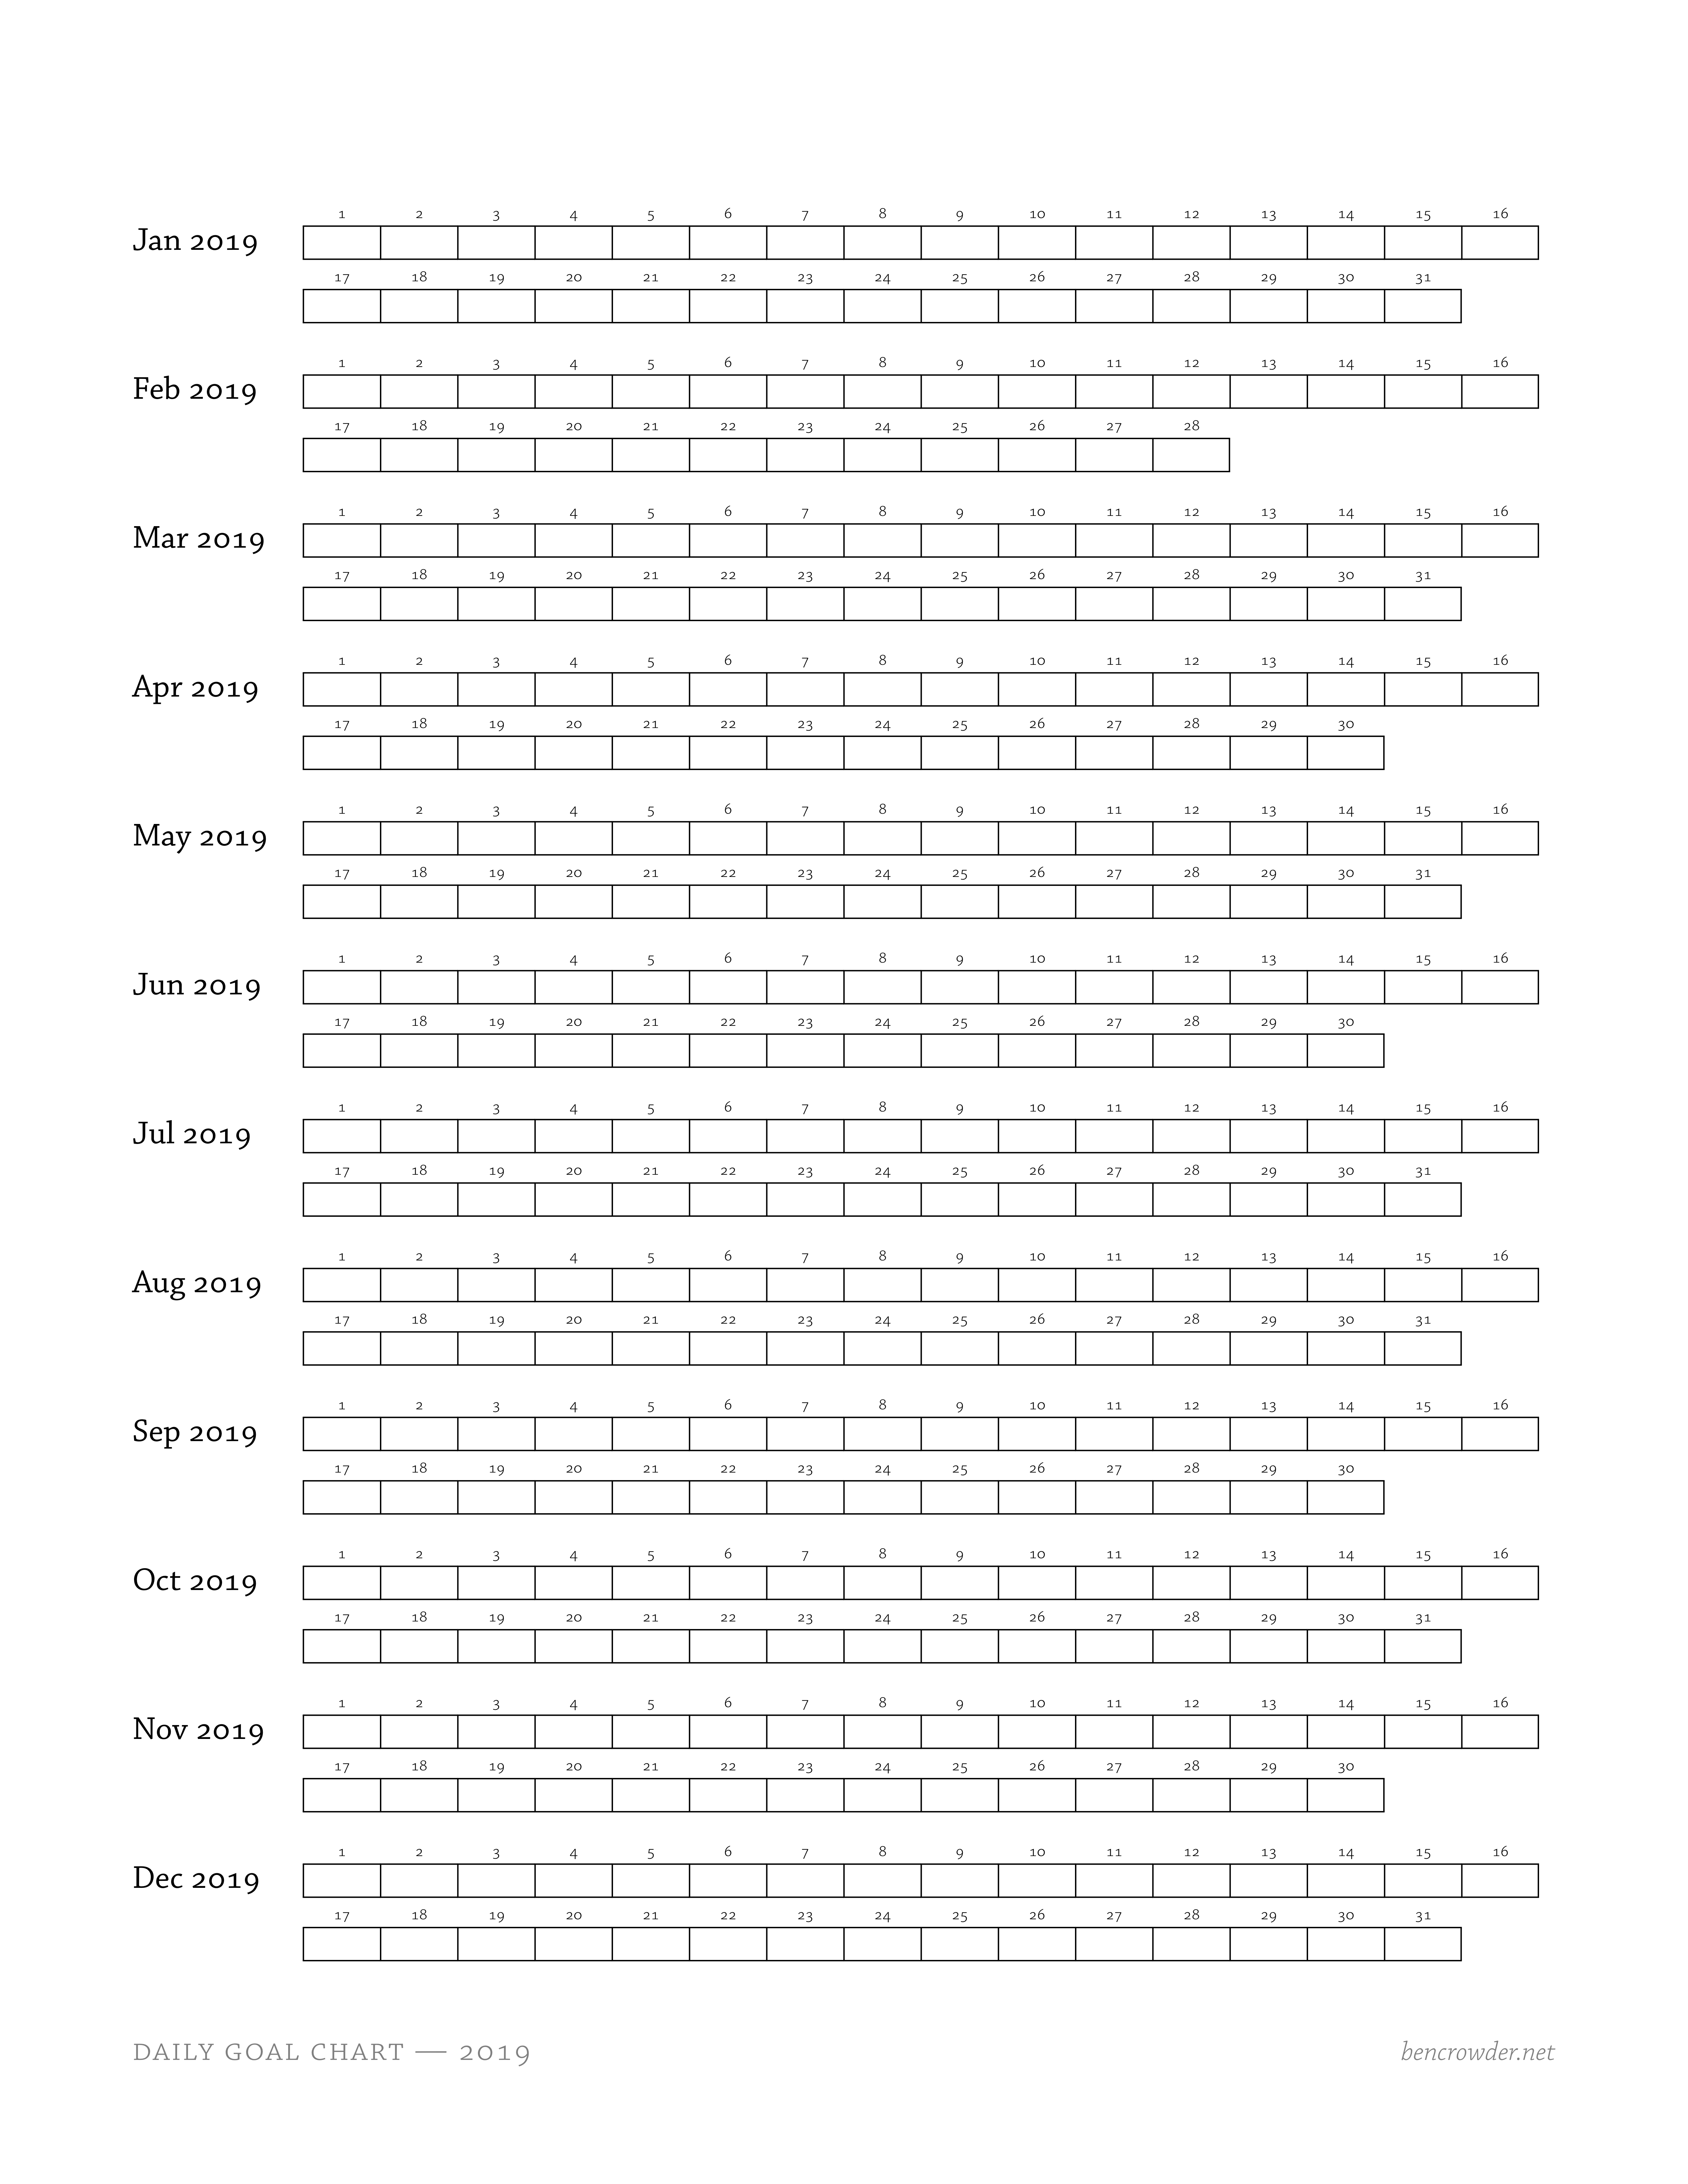 projects/daily-goal-chart/blank-daily-goal-chart-2019.png?v1